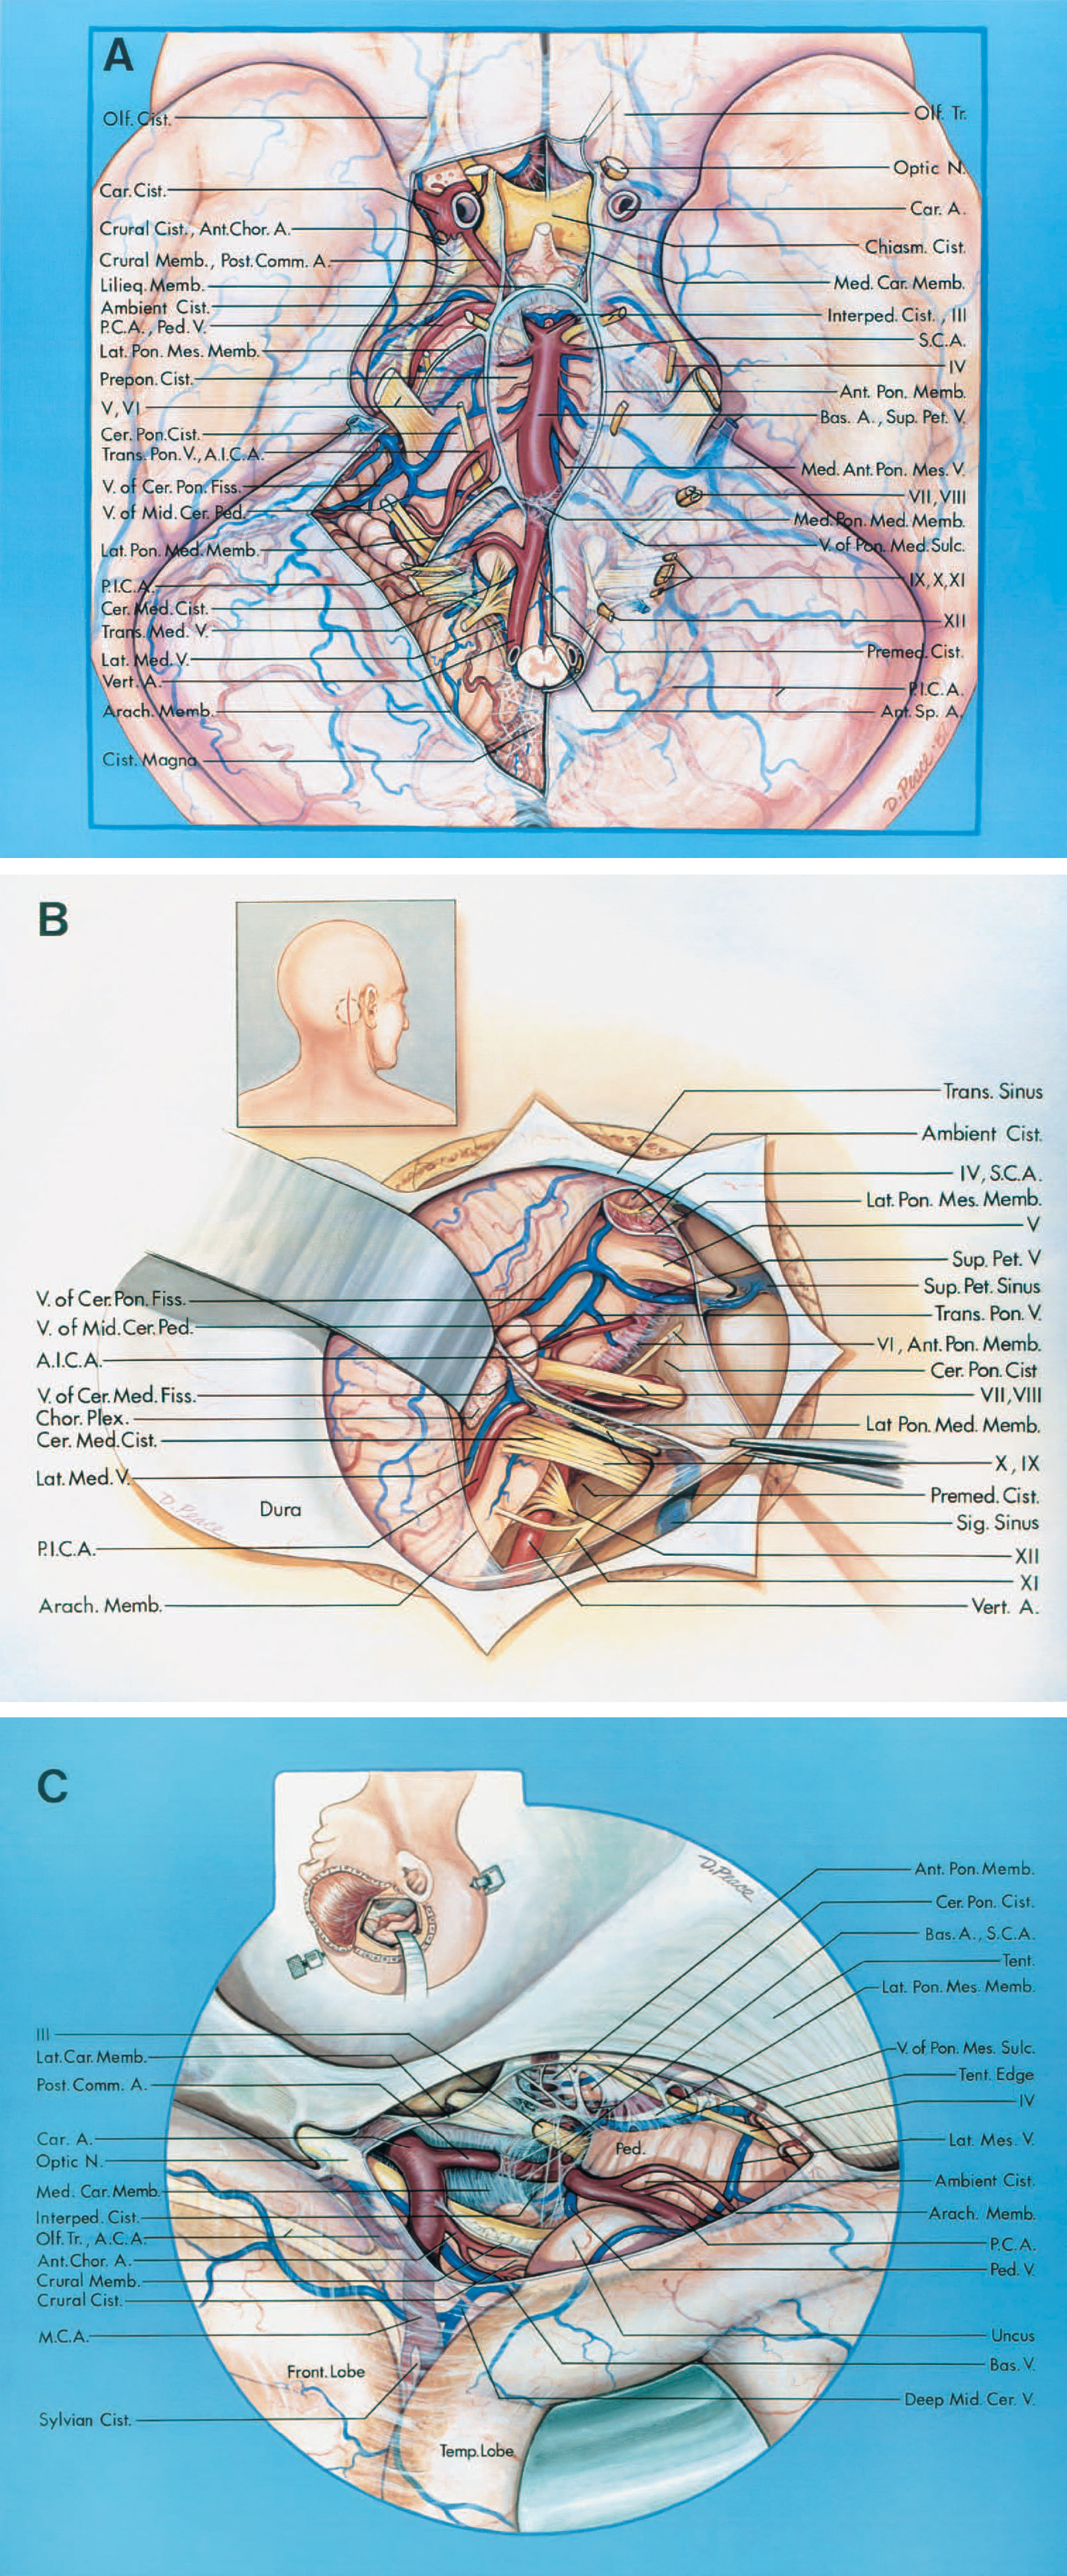 FIGURE 10.2. A. Anterior view. The arachnoid membrane has been removed to expose the following cisterns: olfactory, carotid, chiasmatic, ambient, crural, interpeduncular, prepontine, premedullary, cerebellopontine, and cerebellomedullary and the cisterna magna. The oculomotor nerves course in an arachnoidal intersection situated in the junction of the walls of the carotid, chiasmatic, prepontine, interpeduncular, and cerebellopontine cisterns. The medial carotid membrane separates the carotid and chiasmatic cisterns. The crural membrane separates the crural and ambient cisterns. The anterior pontine membrane separates the prepontine and cerebellopontine cisterns. The lateral pontomesencephalic membrane separates the ambient and cerebellopontine cisterns. The medial pontomedullary membrane separates the prepontine and premedullary cisterns, and the lateral pontomedullary membrane separates the cerebellopontine and cerebellomedullary cisterns. The interpeduncular cistern is situated between the diencephalic and mesencephalic leaves of Liliequist's membrane. The bifurcation of the basilar artery is in the interpeduncular cistern. The carotid and posterior communicating arteries course within the carotid cisterns. The anterior choroidal artery arises in the carotid cistern and courses through the crural cistern. The optic nerves and chiasm and the stalk of the pituitary gland are situated in the chiasmatic cistern. The olfactory cisterns enclose the olfactory tracts. The SCAs arise at the junction of the interpeduncular and prepontine cisterns. The PCAs and trochlear nerves course through the ambient cisterns. The AICAs arise in the prepontine cistern. The premedullary cistern contains the hypoglossal nerves and vertebral arteries and the origin of the PICAs and anterior spinal arteries. The abducens, trigeminal, facial, and vestibulocochlear nerves and a segment of the SCA and AICA pass through the cerebellopontine cisterns. The cerebellomedullary cisterns contain the glossopharyngeal, vagus, and accessory nerves and a segment of the PICAs. The veins that course through the cisterns include the peduncular, transverse pontine, transverse medullary, lateral medullary, and median anterior pontomesencephalic veins and the veins of the pontomedullary sulcus, cerebellopontine fissure, and middle cerebellar peduncle. The veins in the cerebellopontine or cerebellomedullary cisterns join to form the superior petrosal veins. B. Cisterns exposed through a unilateral suboccipital craniectomy. The insert (upper left) shows the site of the skin incision (solid line) and craniectomy (interrupted line). The arachnoid membrane forming the posterior wall of the cerebellopontine and cerebellomedullary cisterns has been opened. The anterior pontine membrane is medial to the abducens nerve. The lateral pontomedullary membrane separates the cerebellopontine and cerebellomedullary cisterns. The flocculus and choroid plexus protrude into the junction of the cerebellomedullary and cerebellopontine cisterns near the foramen of Luschka. C. Cisterns in the tentorial incisura. View through a right frontotemporal craniotomy. The insert shows the direction of view. The inferior surface of the temporal lobe has been elevated. The arachnoid membrane medial to the free edge of the tentorium has been opened to expose the carotid, ambient, crural, cerebellopontine, interpeduncular, and sylvian cisterns. The lateral carotid membrane is on the lateral side of the carotid artery, and the medial carotid membrane separates the carotid and chiasmatic cisterns. The crural membrane extends from the optic tract to the uncus and between the origins of the posterior communicating and anterior choroidal arteries. A., artery; A.C.A., anterior cerebral artery; Ant., anterior; Arach., arachnoid; Bas., basilar; Car., carotid; Cer., cerebellar; Cer. Med., cerebellomedullary; Cer. Pon., cerebellopontine; Chiasm., chiasmatic; Chor., choroid; Cist., cistern, cisterna; Comm., communicating; Fiss., fissure; Front., frontal; Interped., interpeduncular; Lat., lateral; Lilieq., Liliequist's; M.C.A., middle cerebral artery; Med., medial, medullary; Memb., membrane; Mid., middle; N., nerve; Olf., olfactory; P.C.A., posterior cerebral artery; Ped., peduncular; Pet., petrosal; P.I.C.A., posteroinferior cerebellar artery; Pon., pontine; Pon. Med., pontomedullary; Pon. Mes., pontomesencephalic; Premed., premedullary; Prepon., prepontine; S.C.A., superior cerebellar artery; Sig., sigmoid; Sp., spinal; Sulc., sulcus; Temp., temporal; Tent., tentorium; Tr., trunk; Trans., transverse; V., vein; Vert., vertebral.